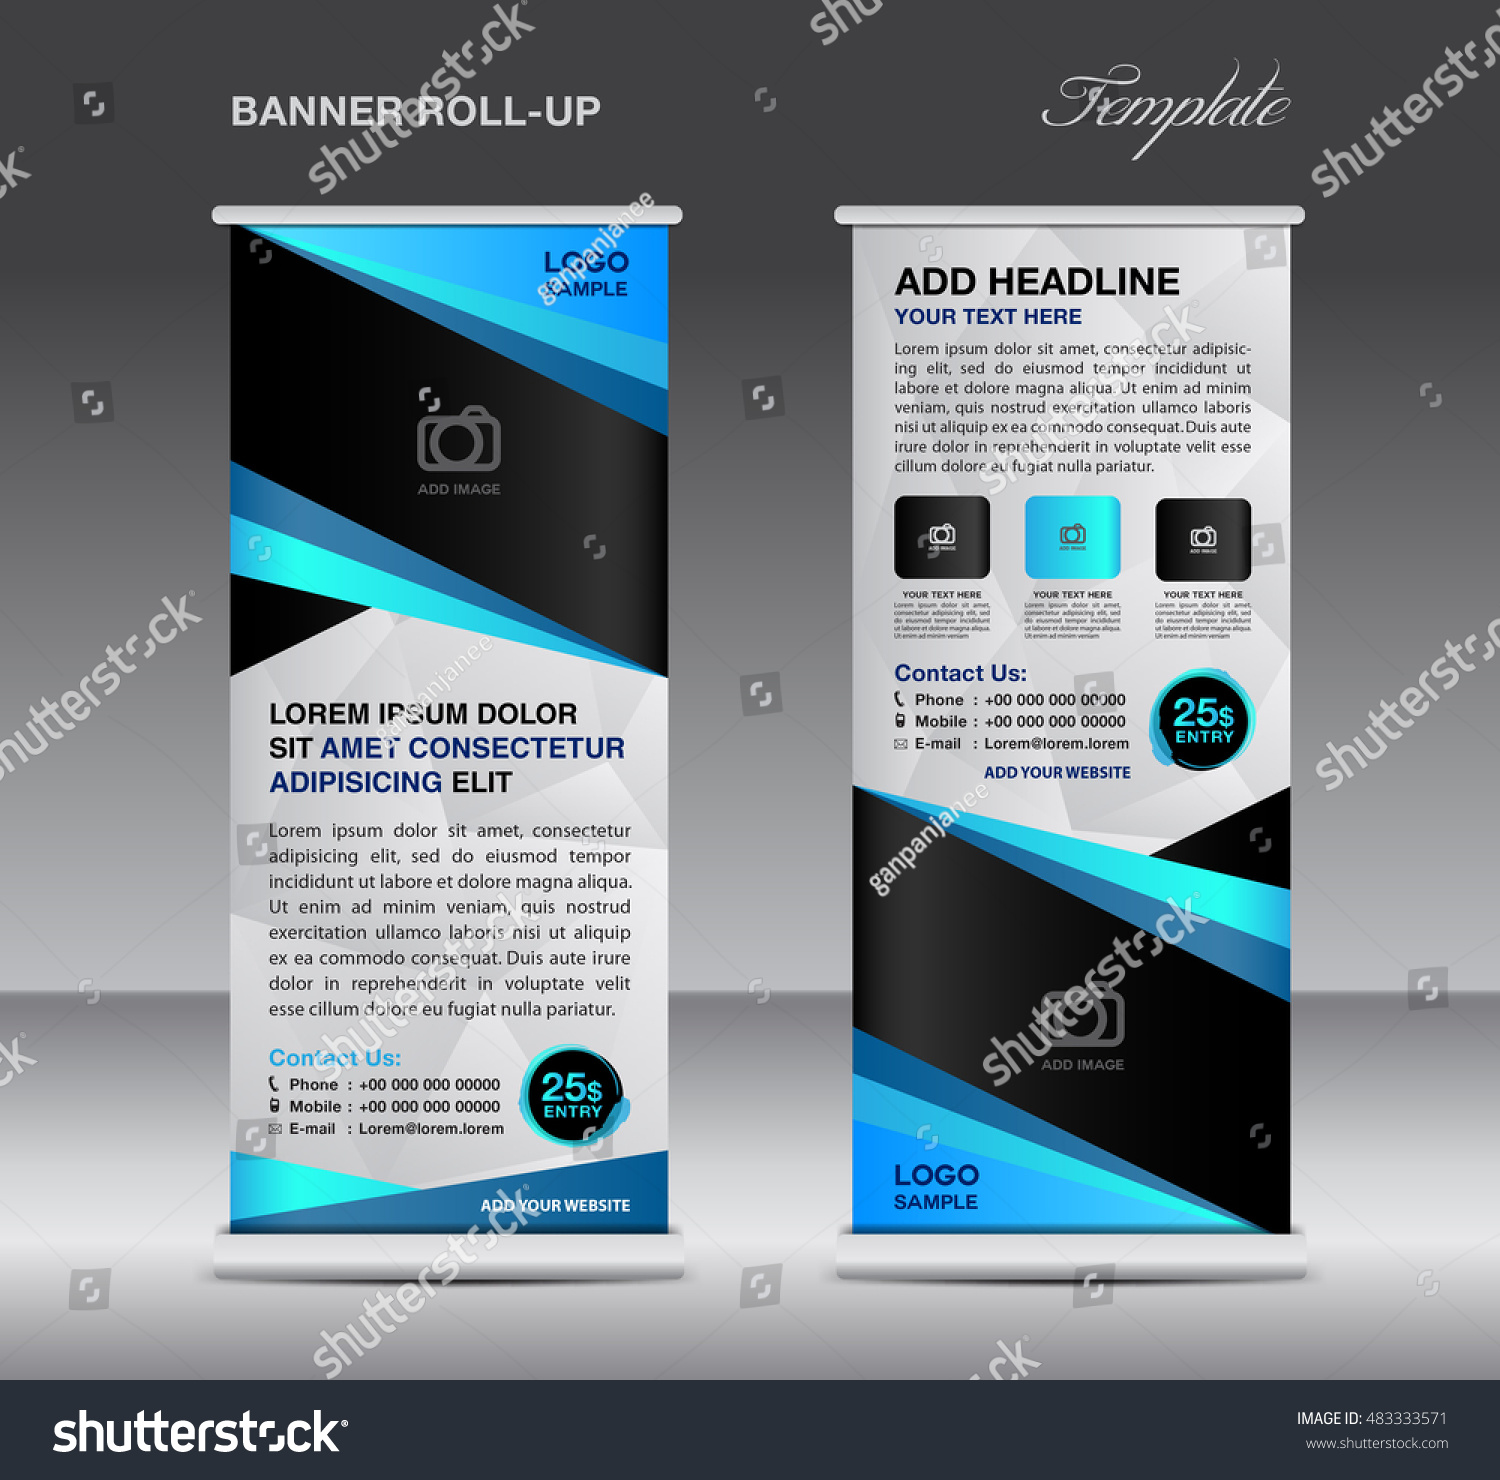 banner stand template stand design blue banner design pull up banner stand template stand design blue banner design pull up flyer template